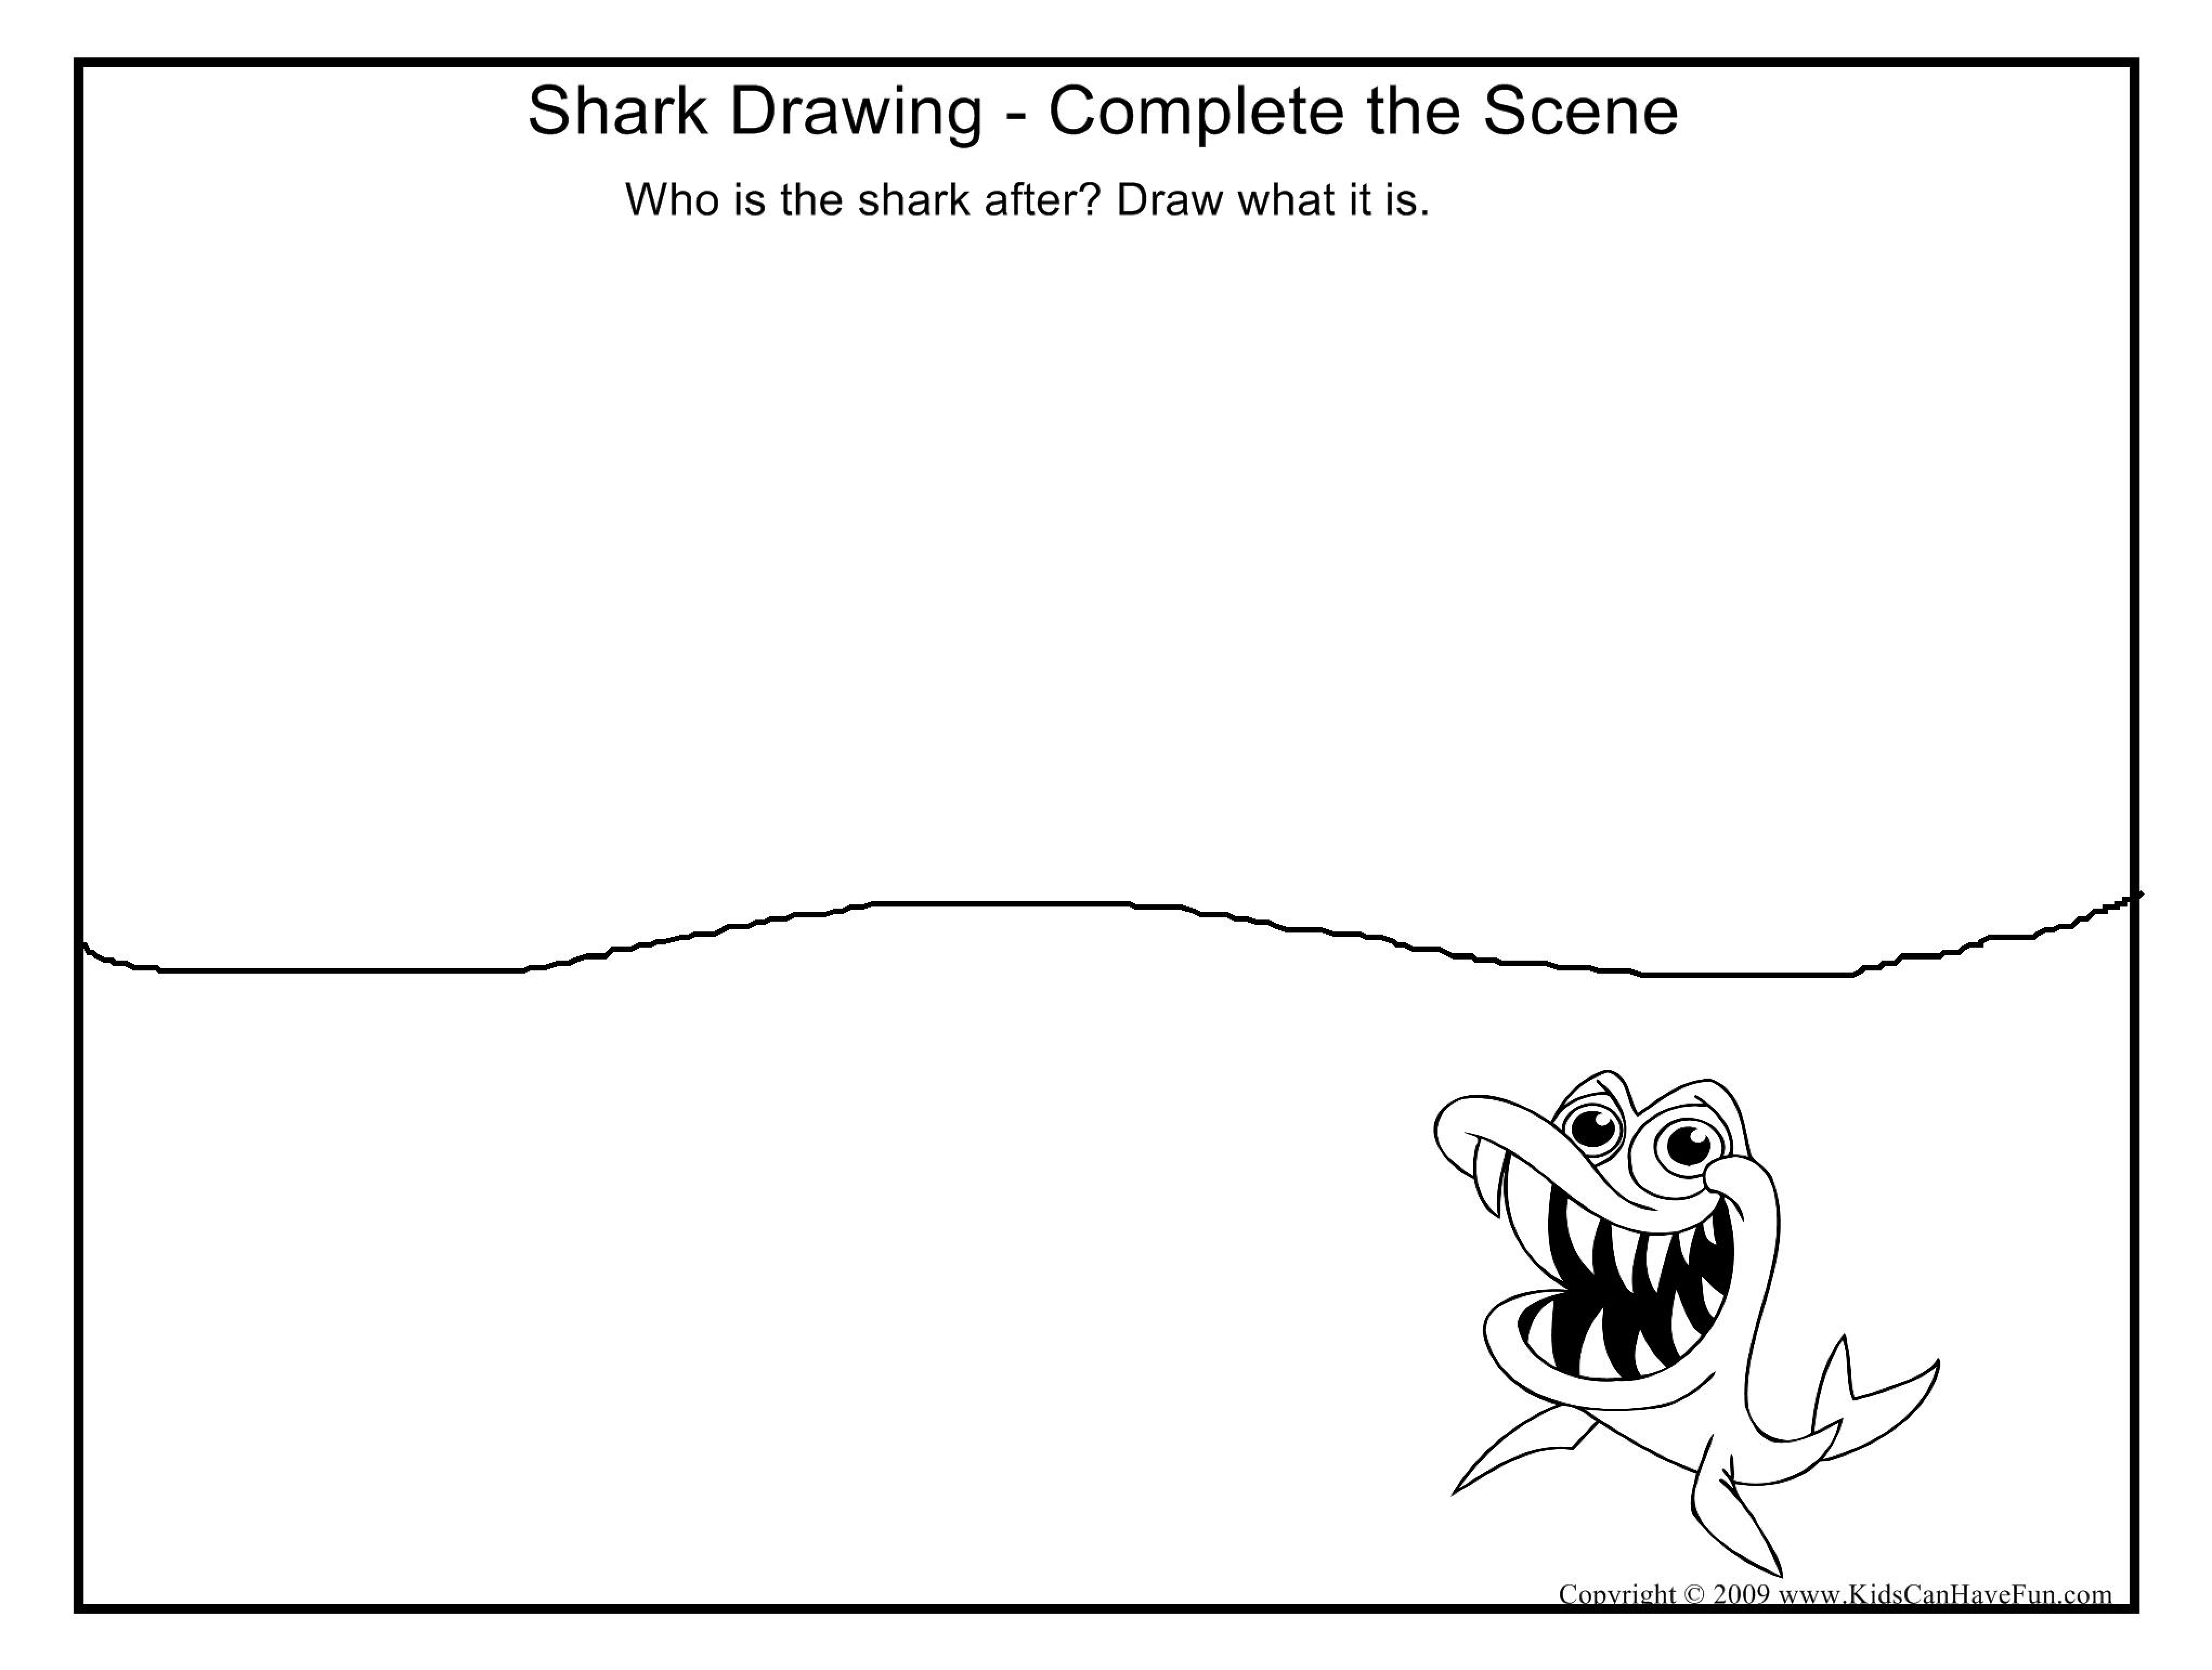 Complete The Shark Drawing Worksheet